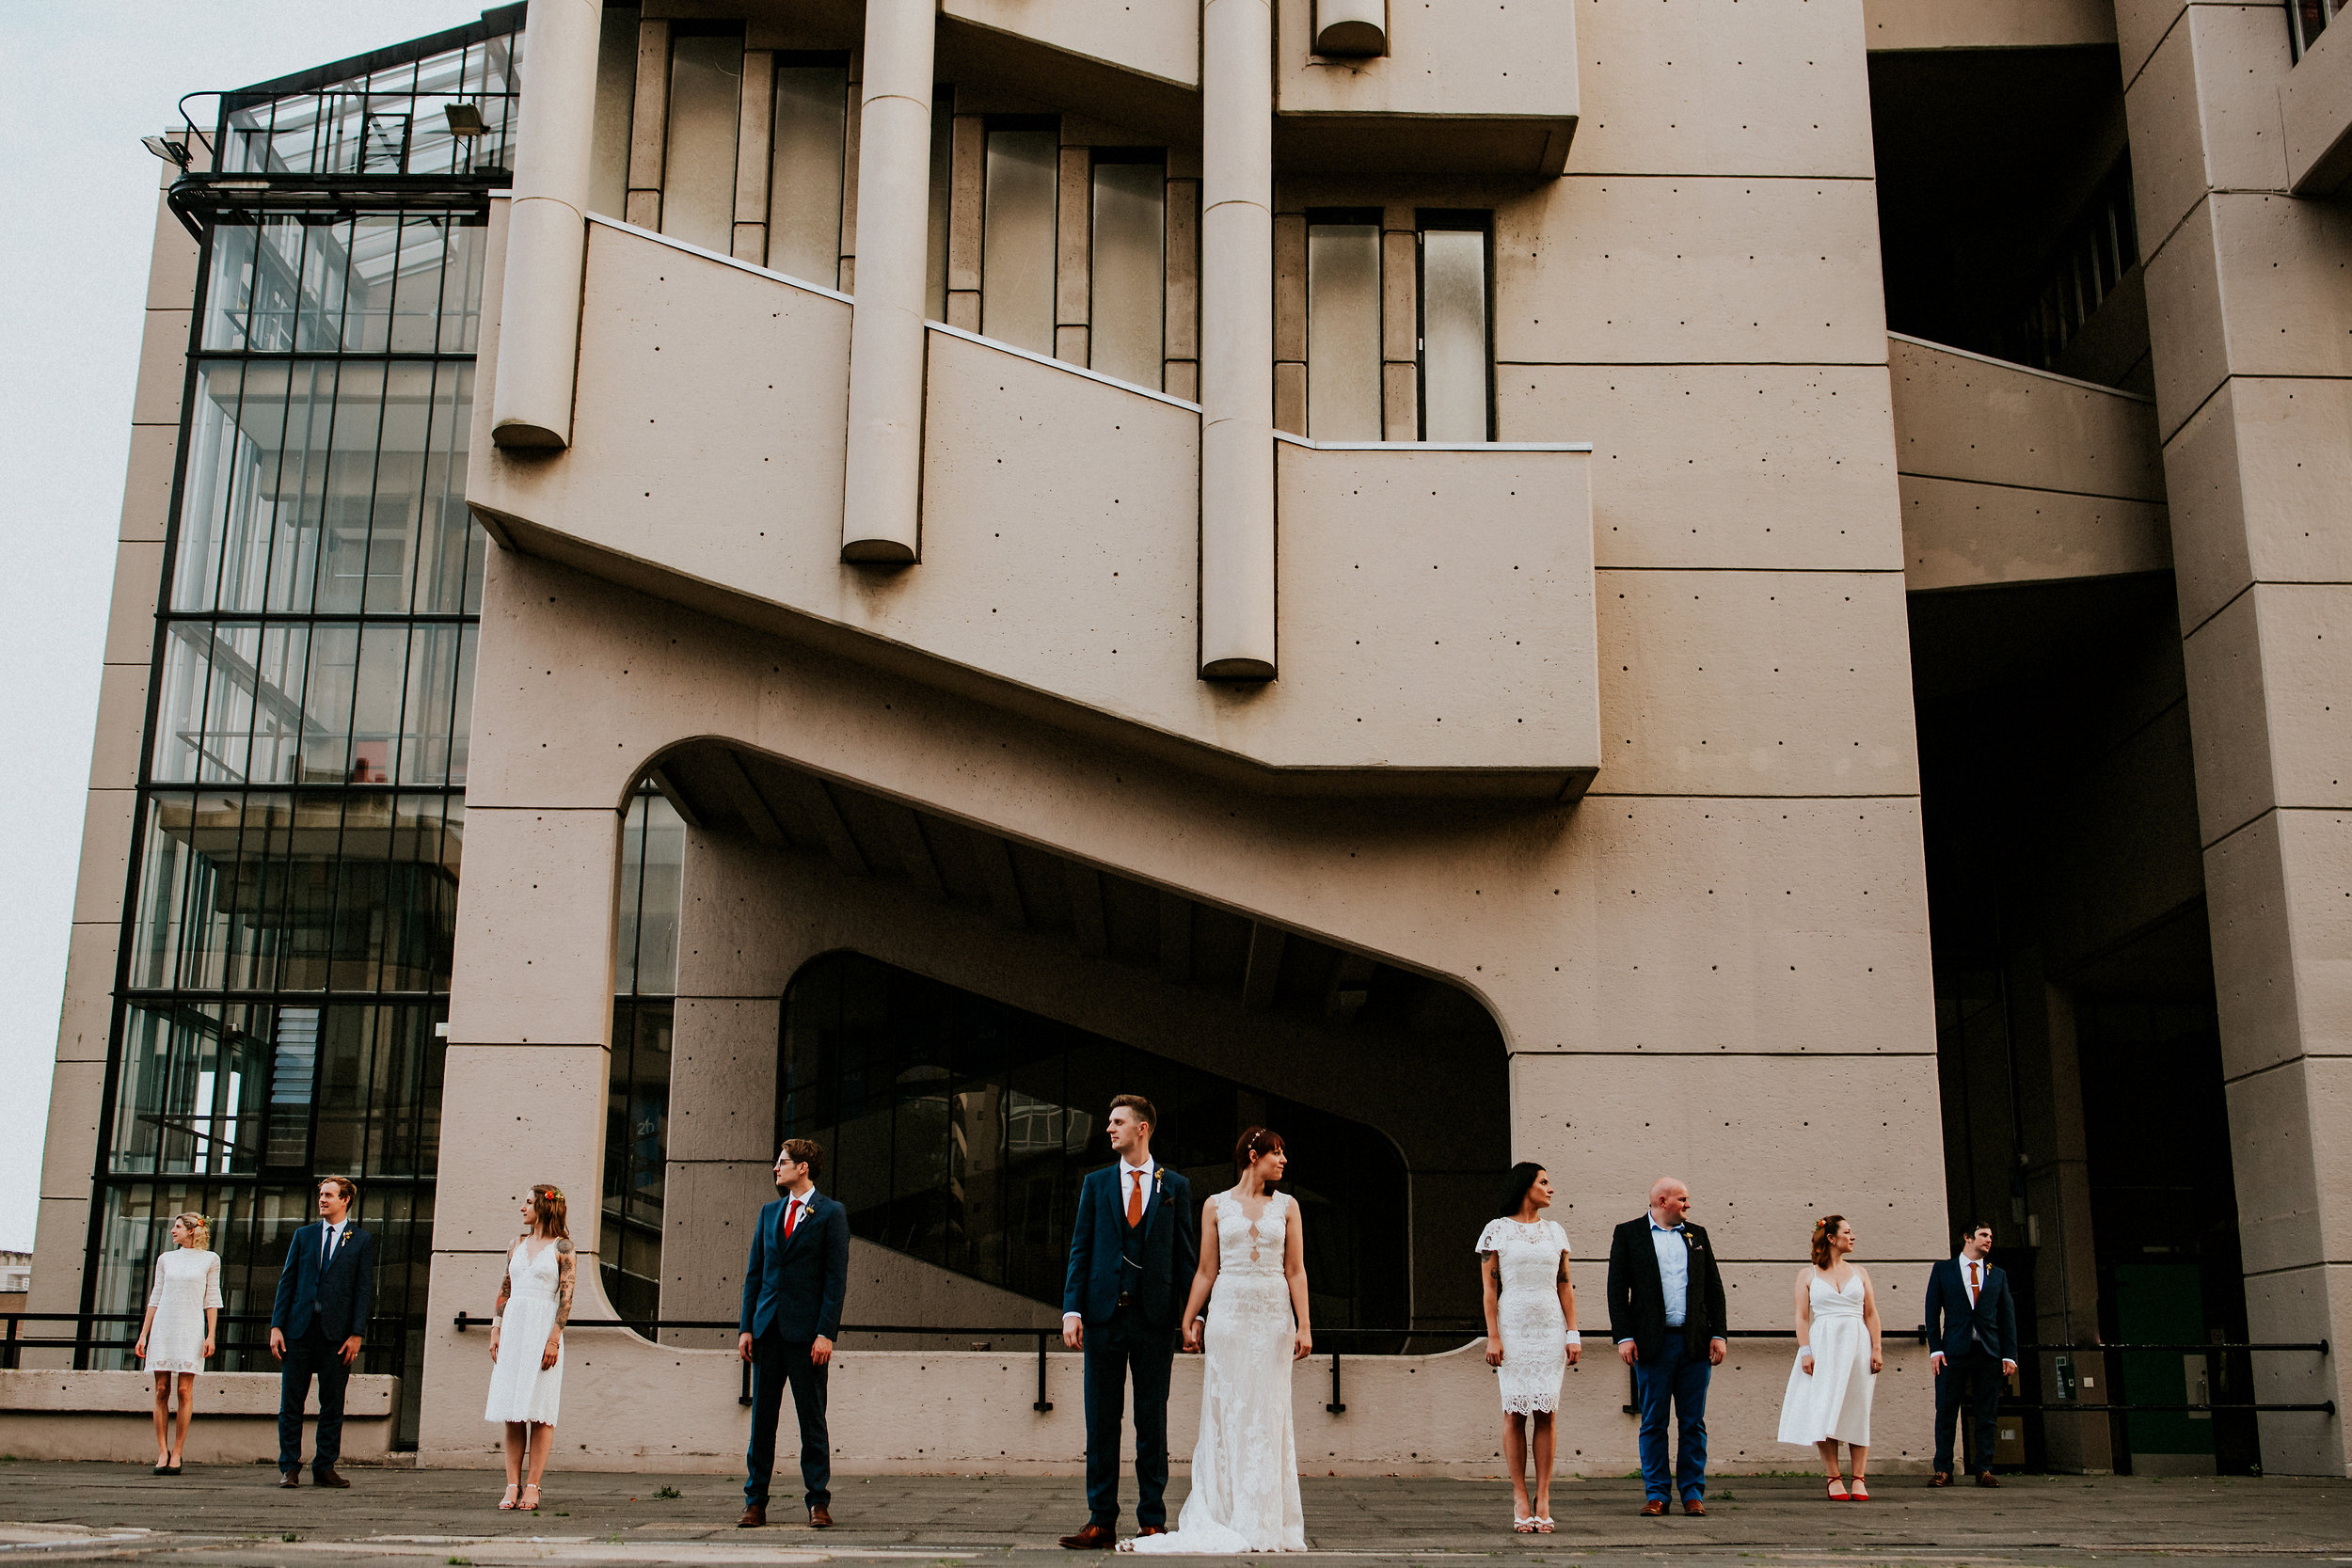 Industrial brutalist city portraits, Magic made amidst the Roger Stevens building, Concrete meets heart in this 1960's inspired Faversham Leeds wedding